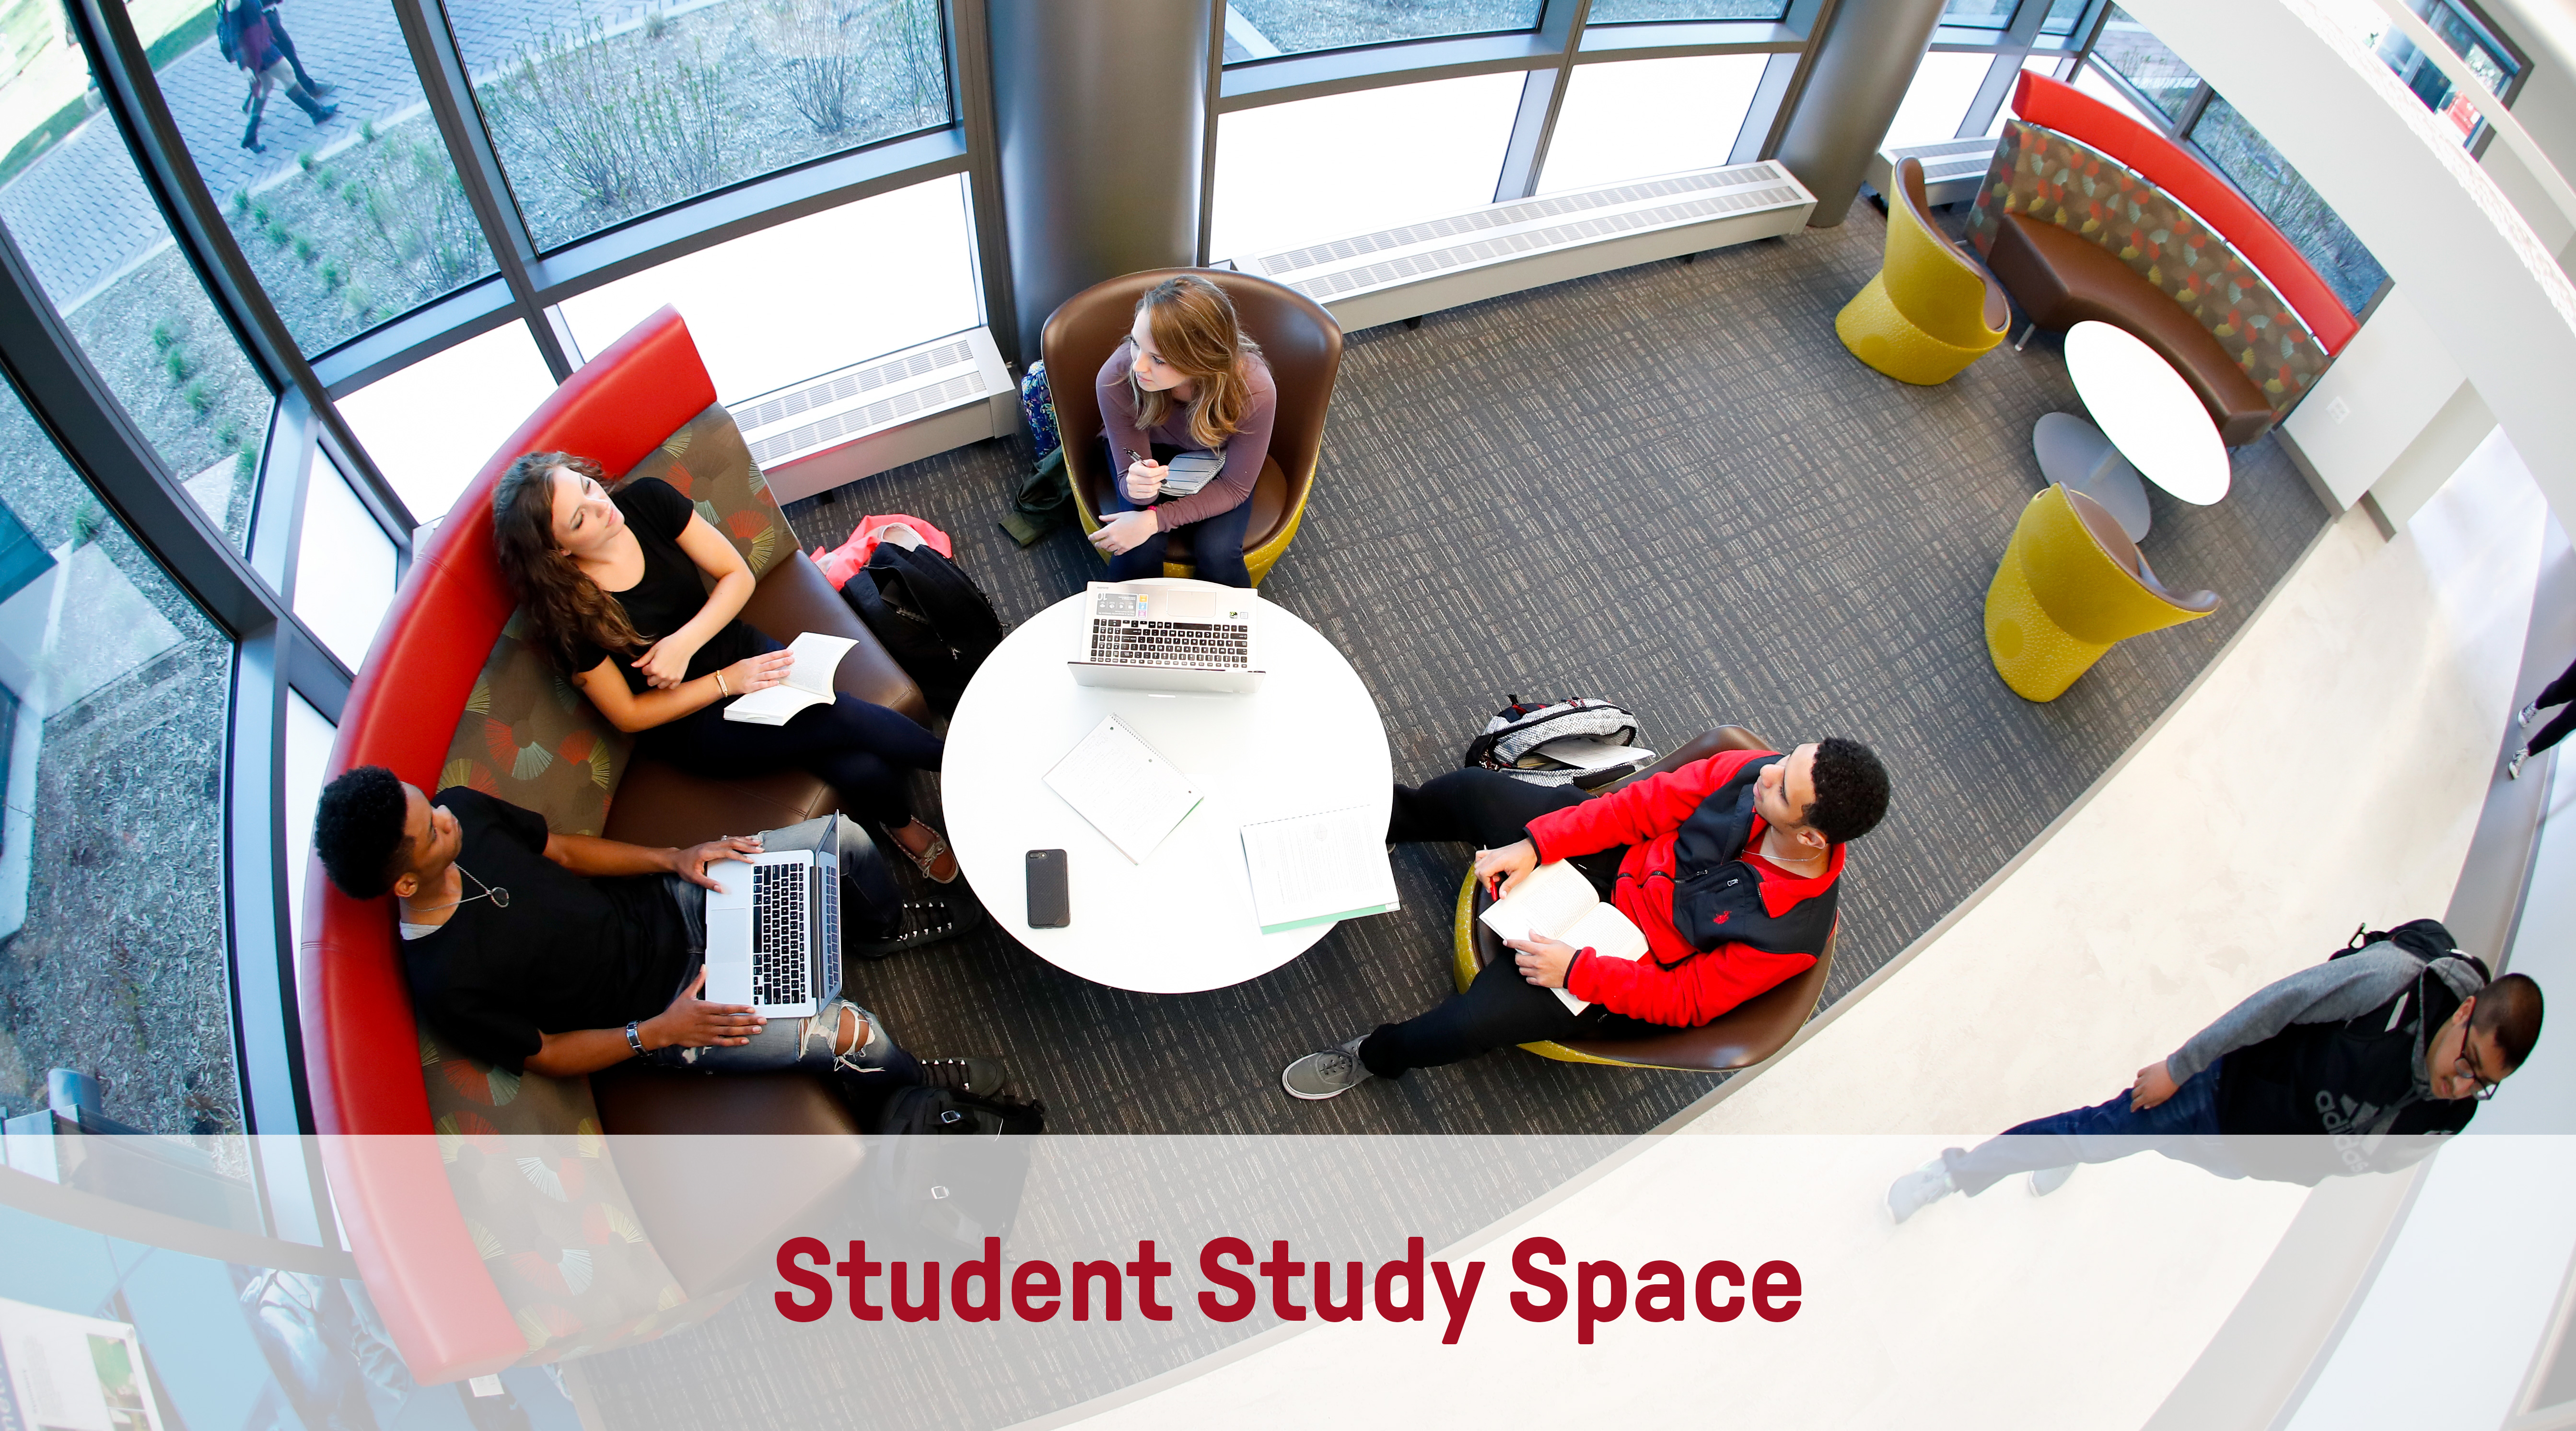 Student Study Space